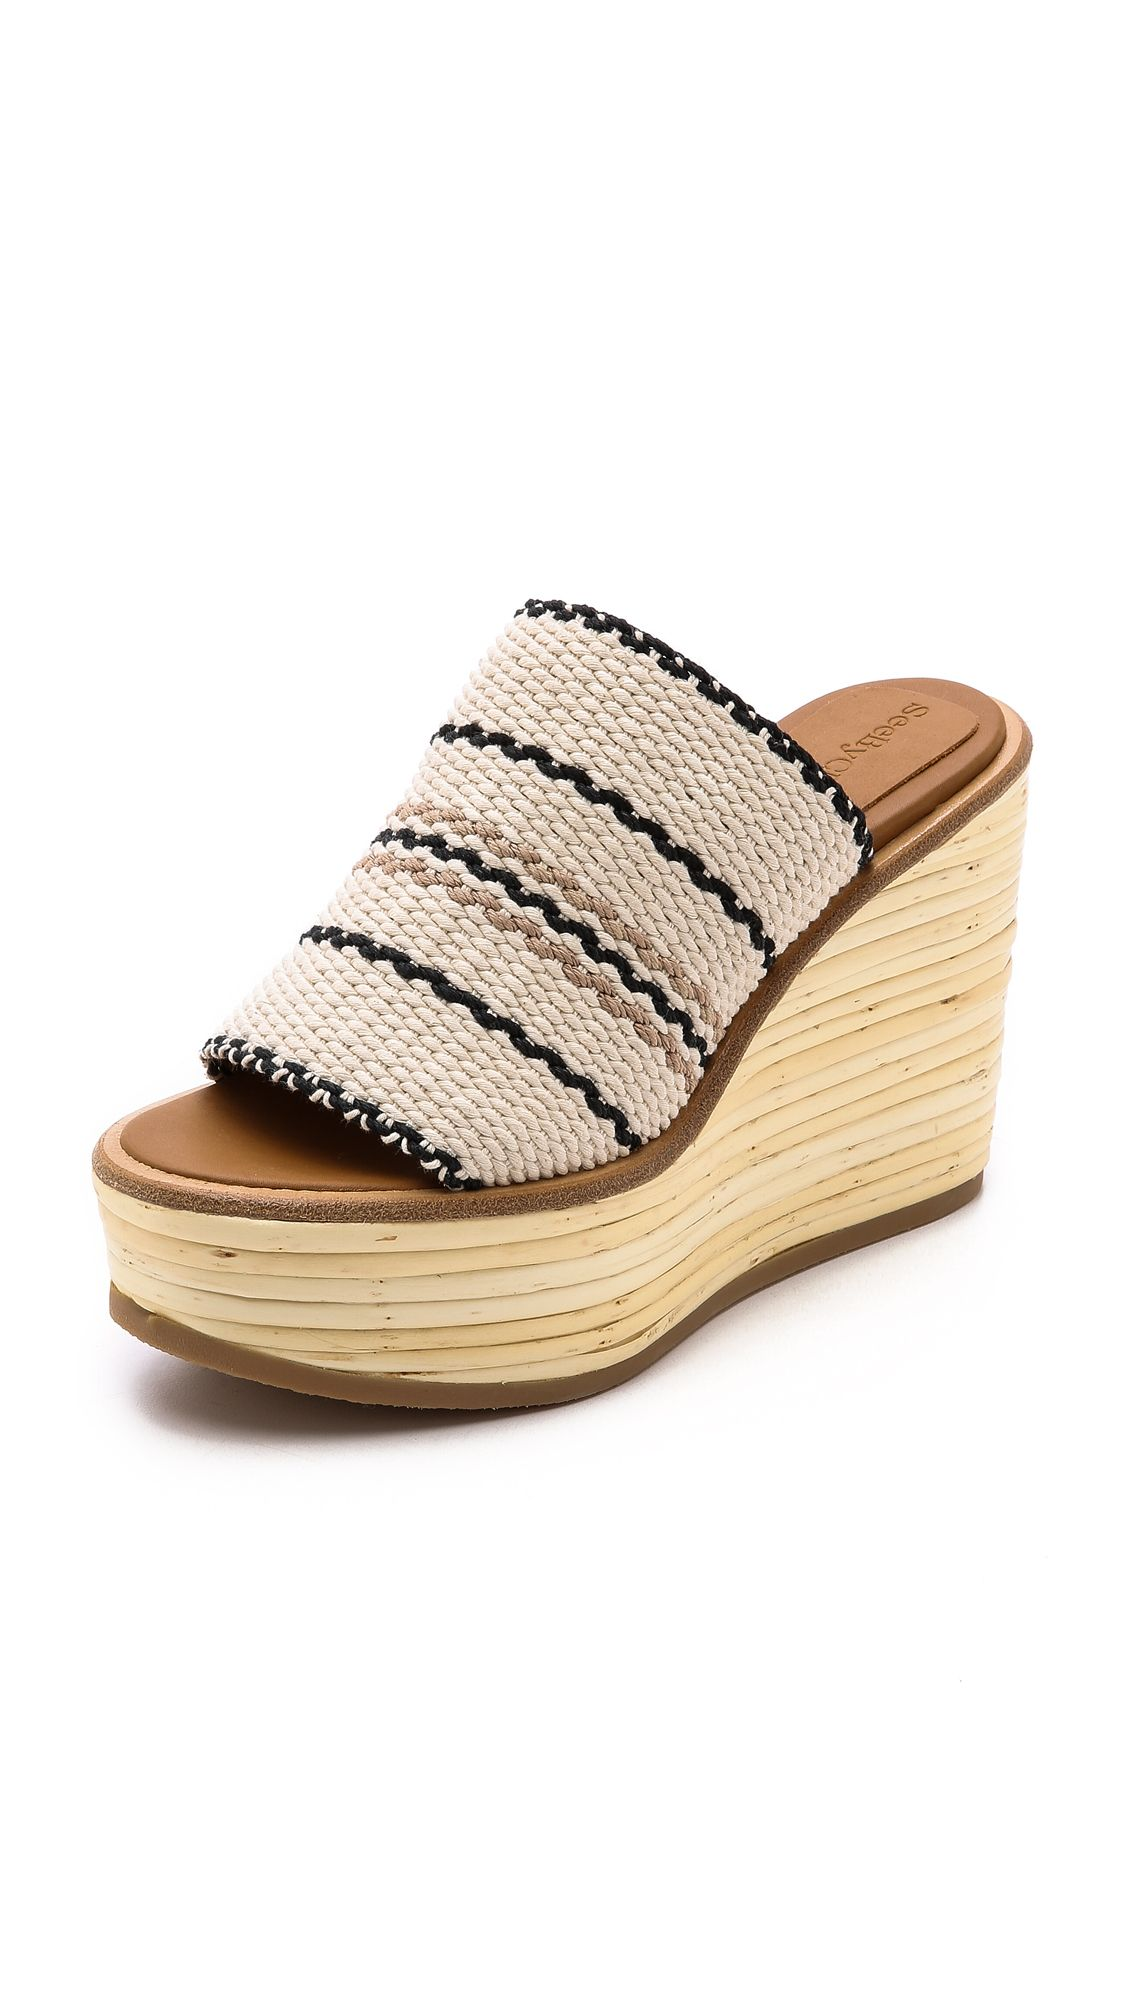 89cfce66a1 Bamboo Wedge Slides   Ballet flats   See by chloe, Chloe sandals, Wedges